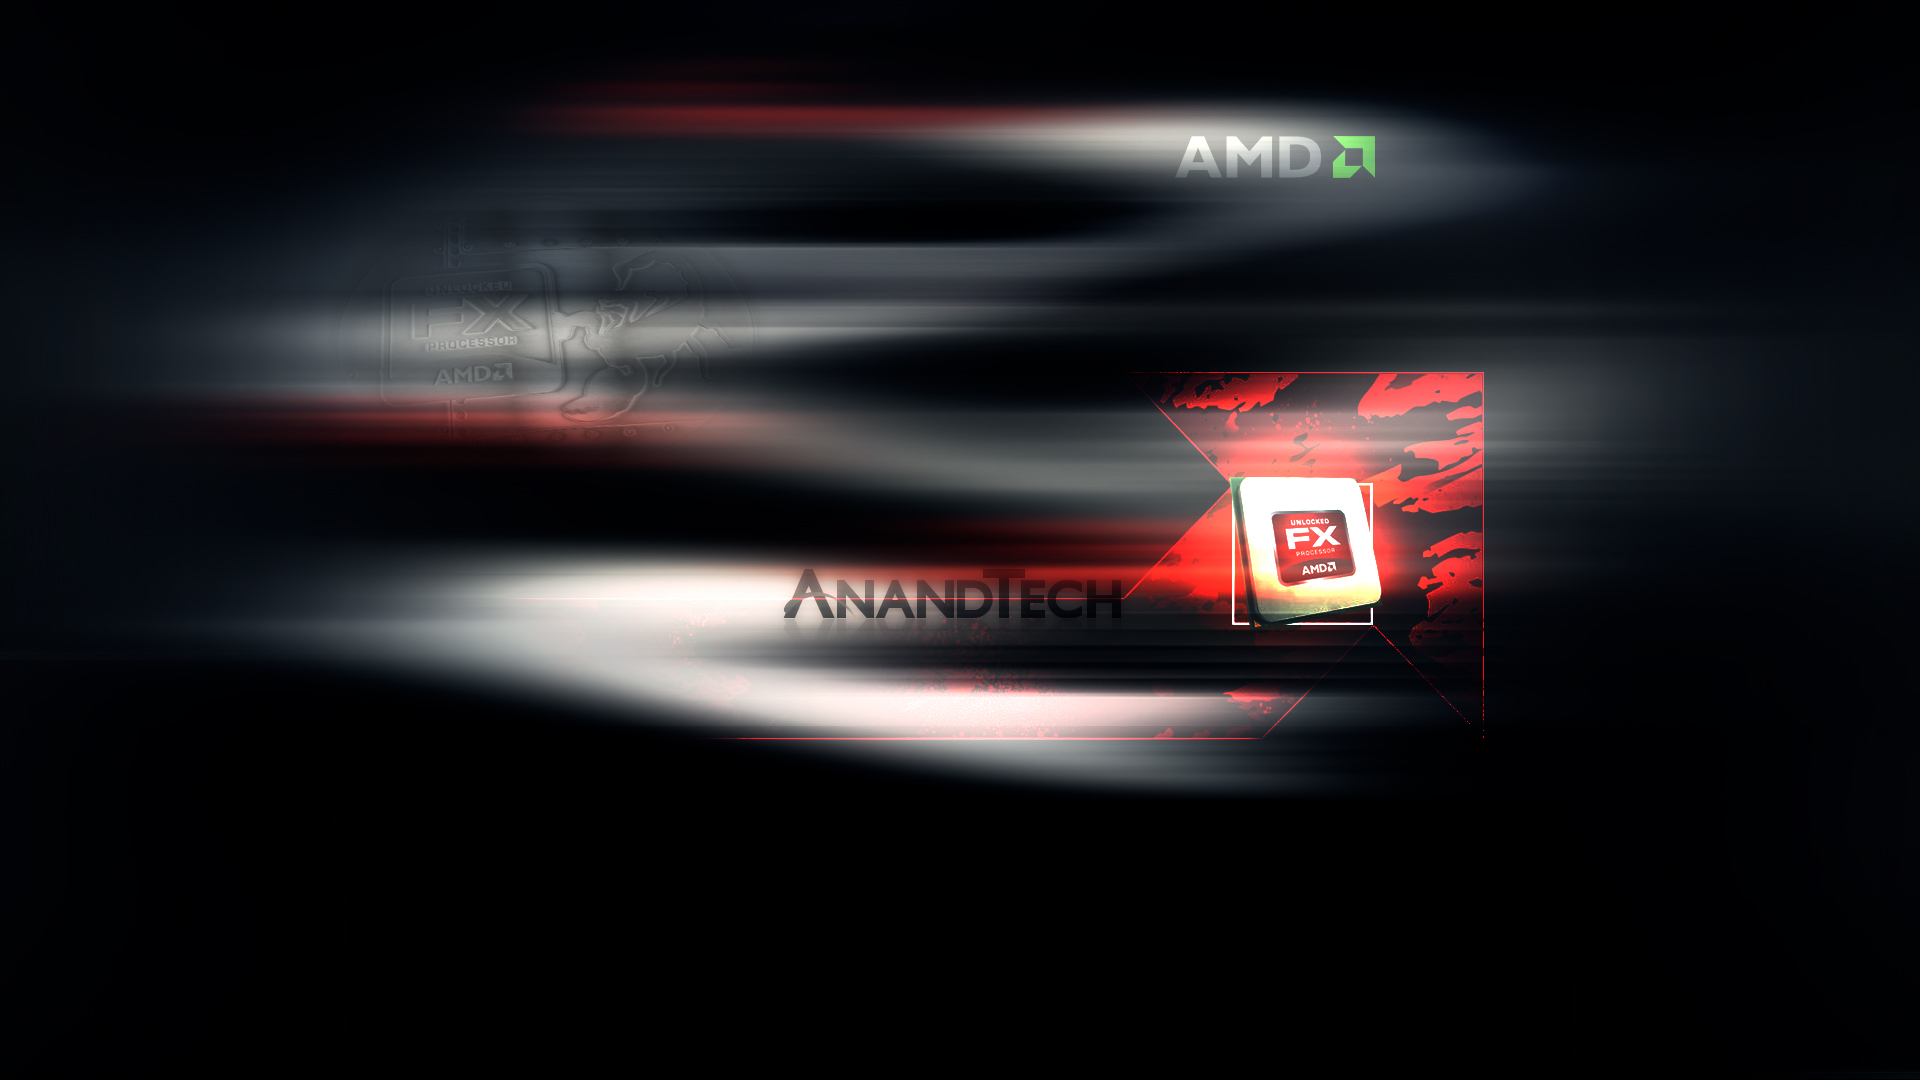 download wallpapers amd fx - photo #14